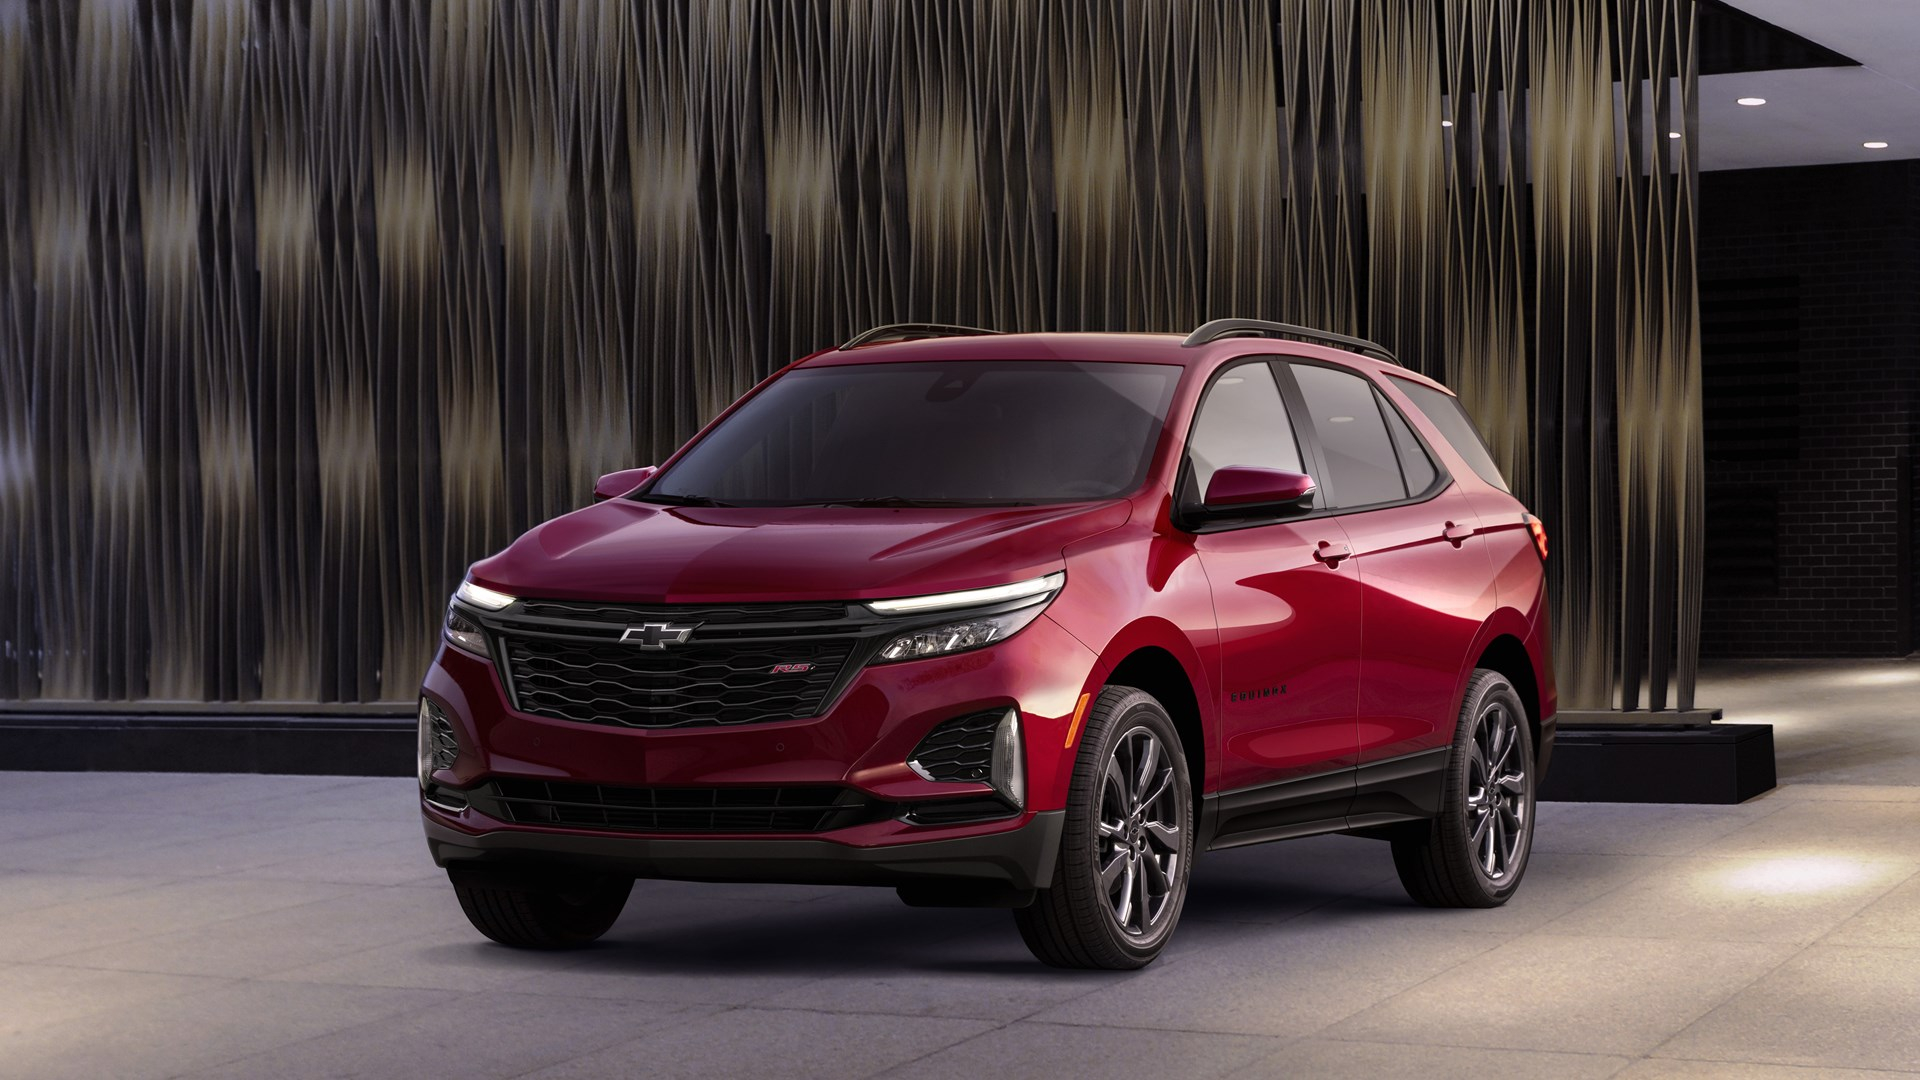 2021 Chevy Equinox Gets Facelift And New Rs Trim | Autotrader.ca 2021 Chevy Equinox Used, User Manual, Upgrades